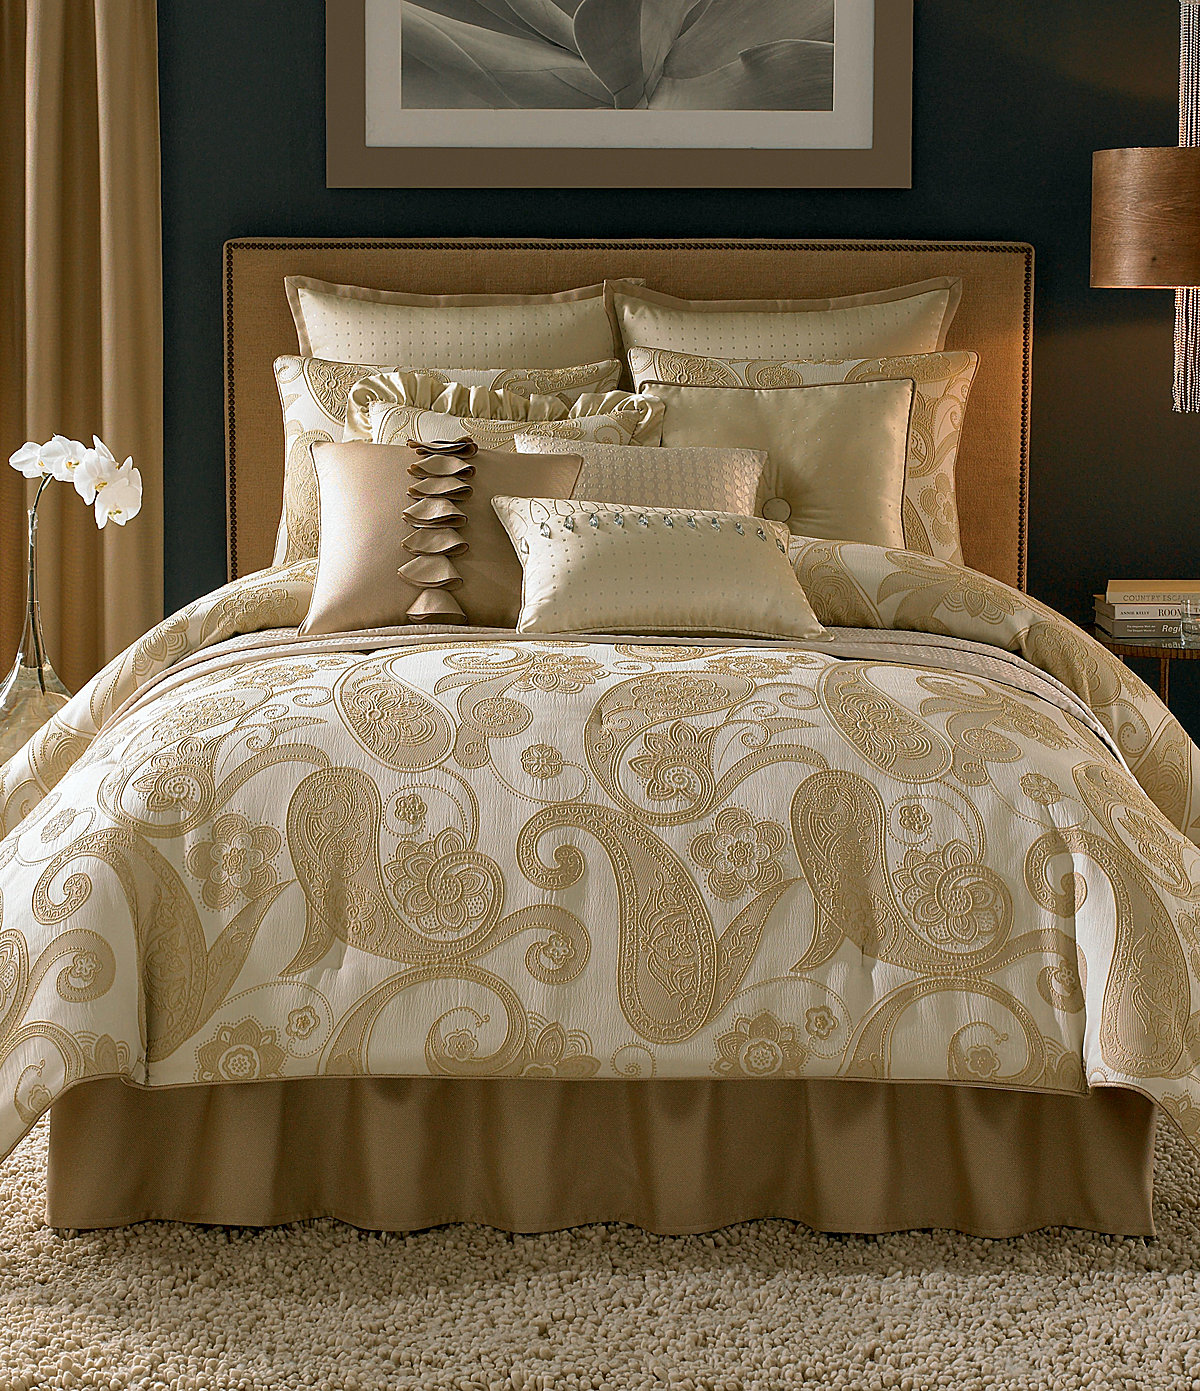 Bedding Decor: Modern Furniture: 2013 Candice Olson Bedding Collection